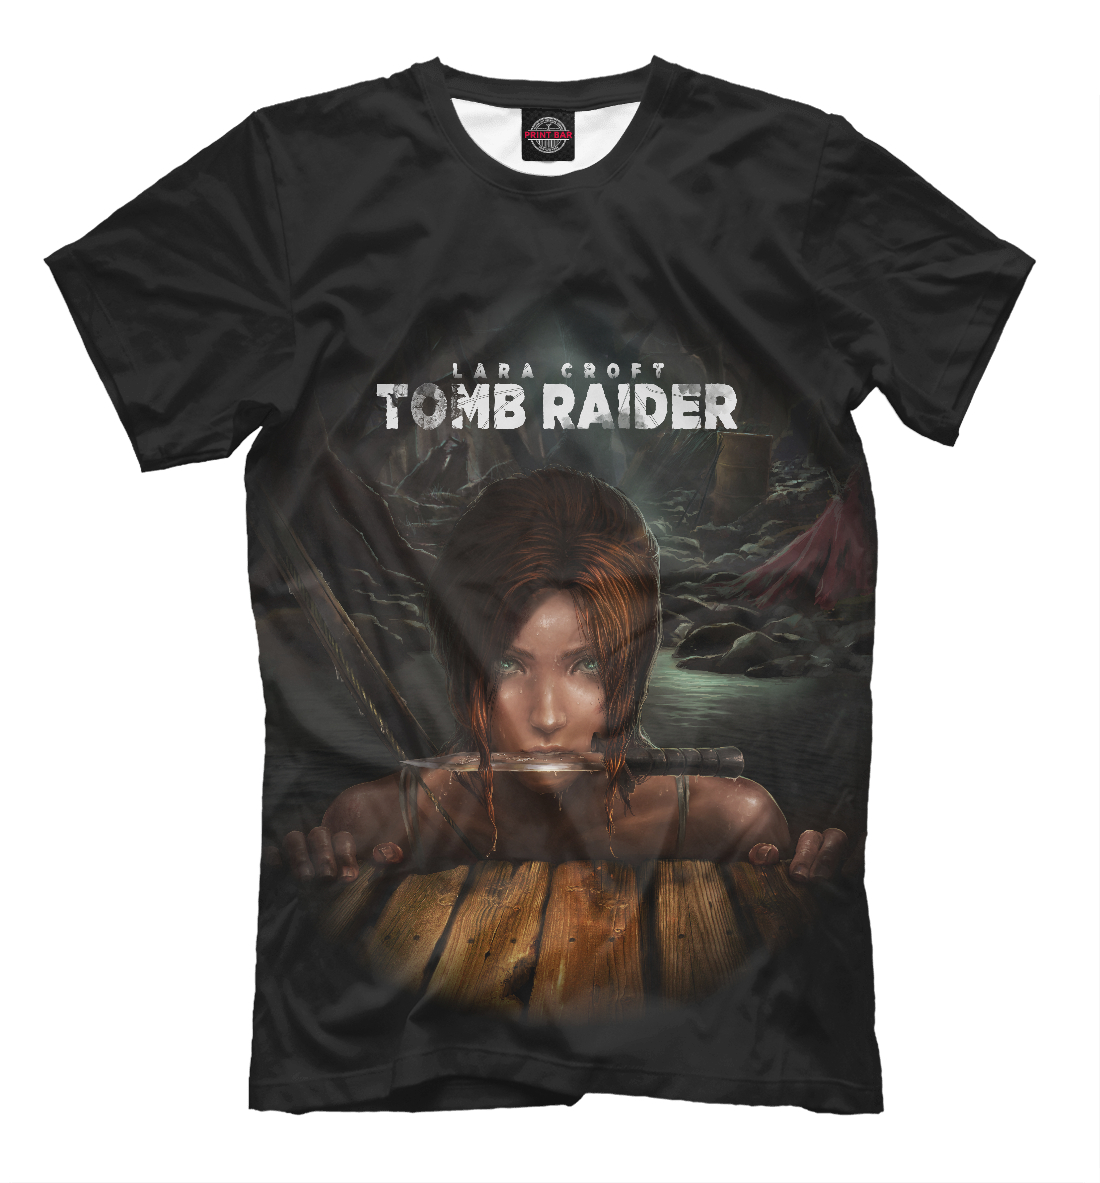 Купить Tomb RAIDER, Printbar, Футболки, TBR-853731-fut-2